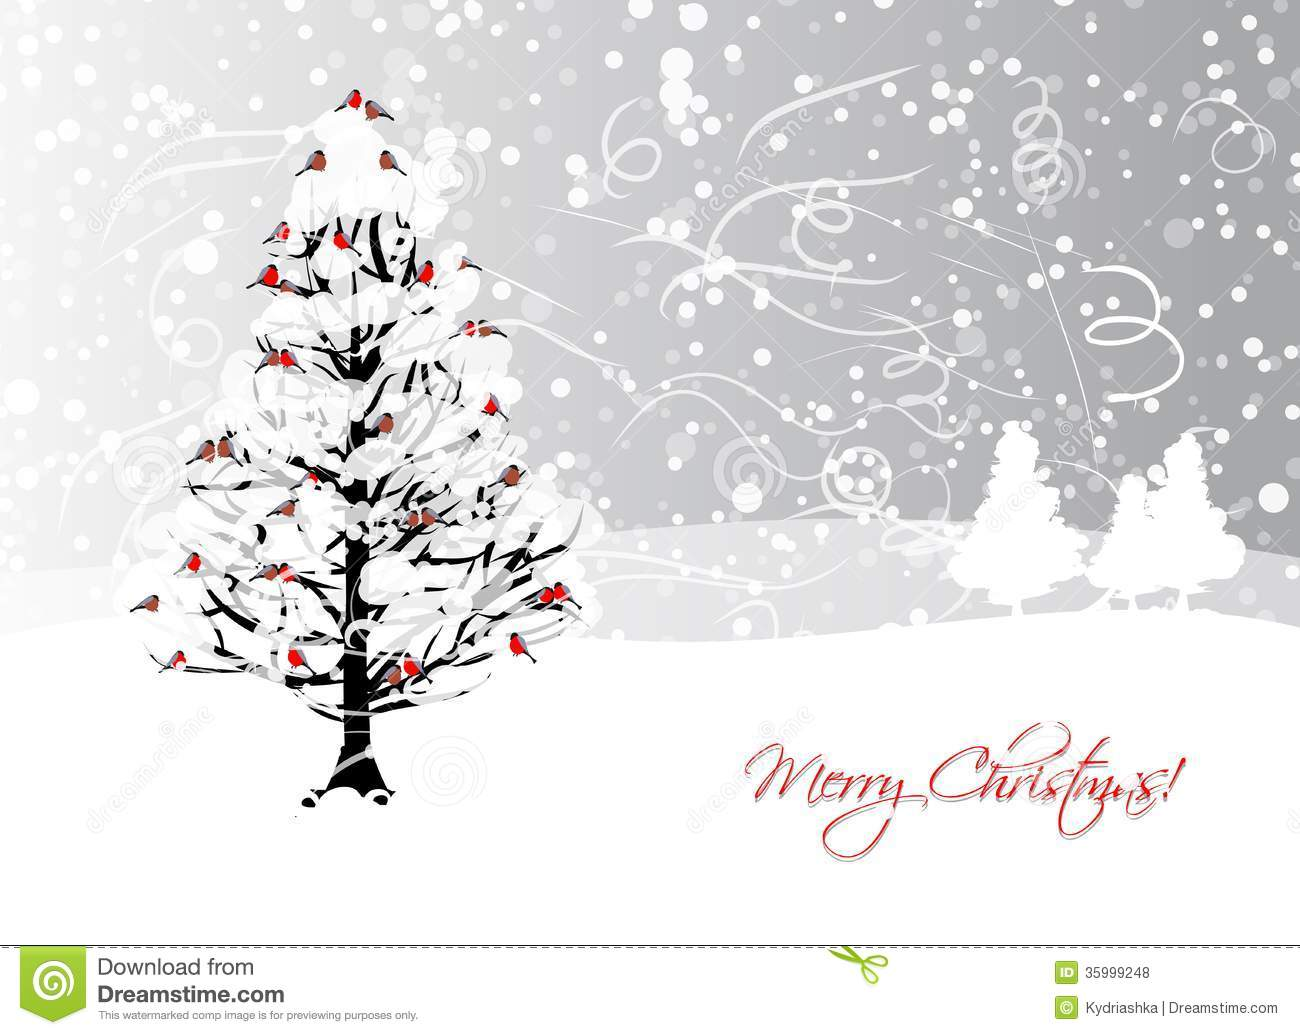 Design christmas cards free selol ink design christmas cards free m4hsunfo